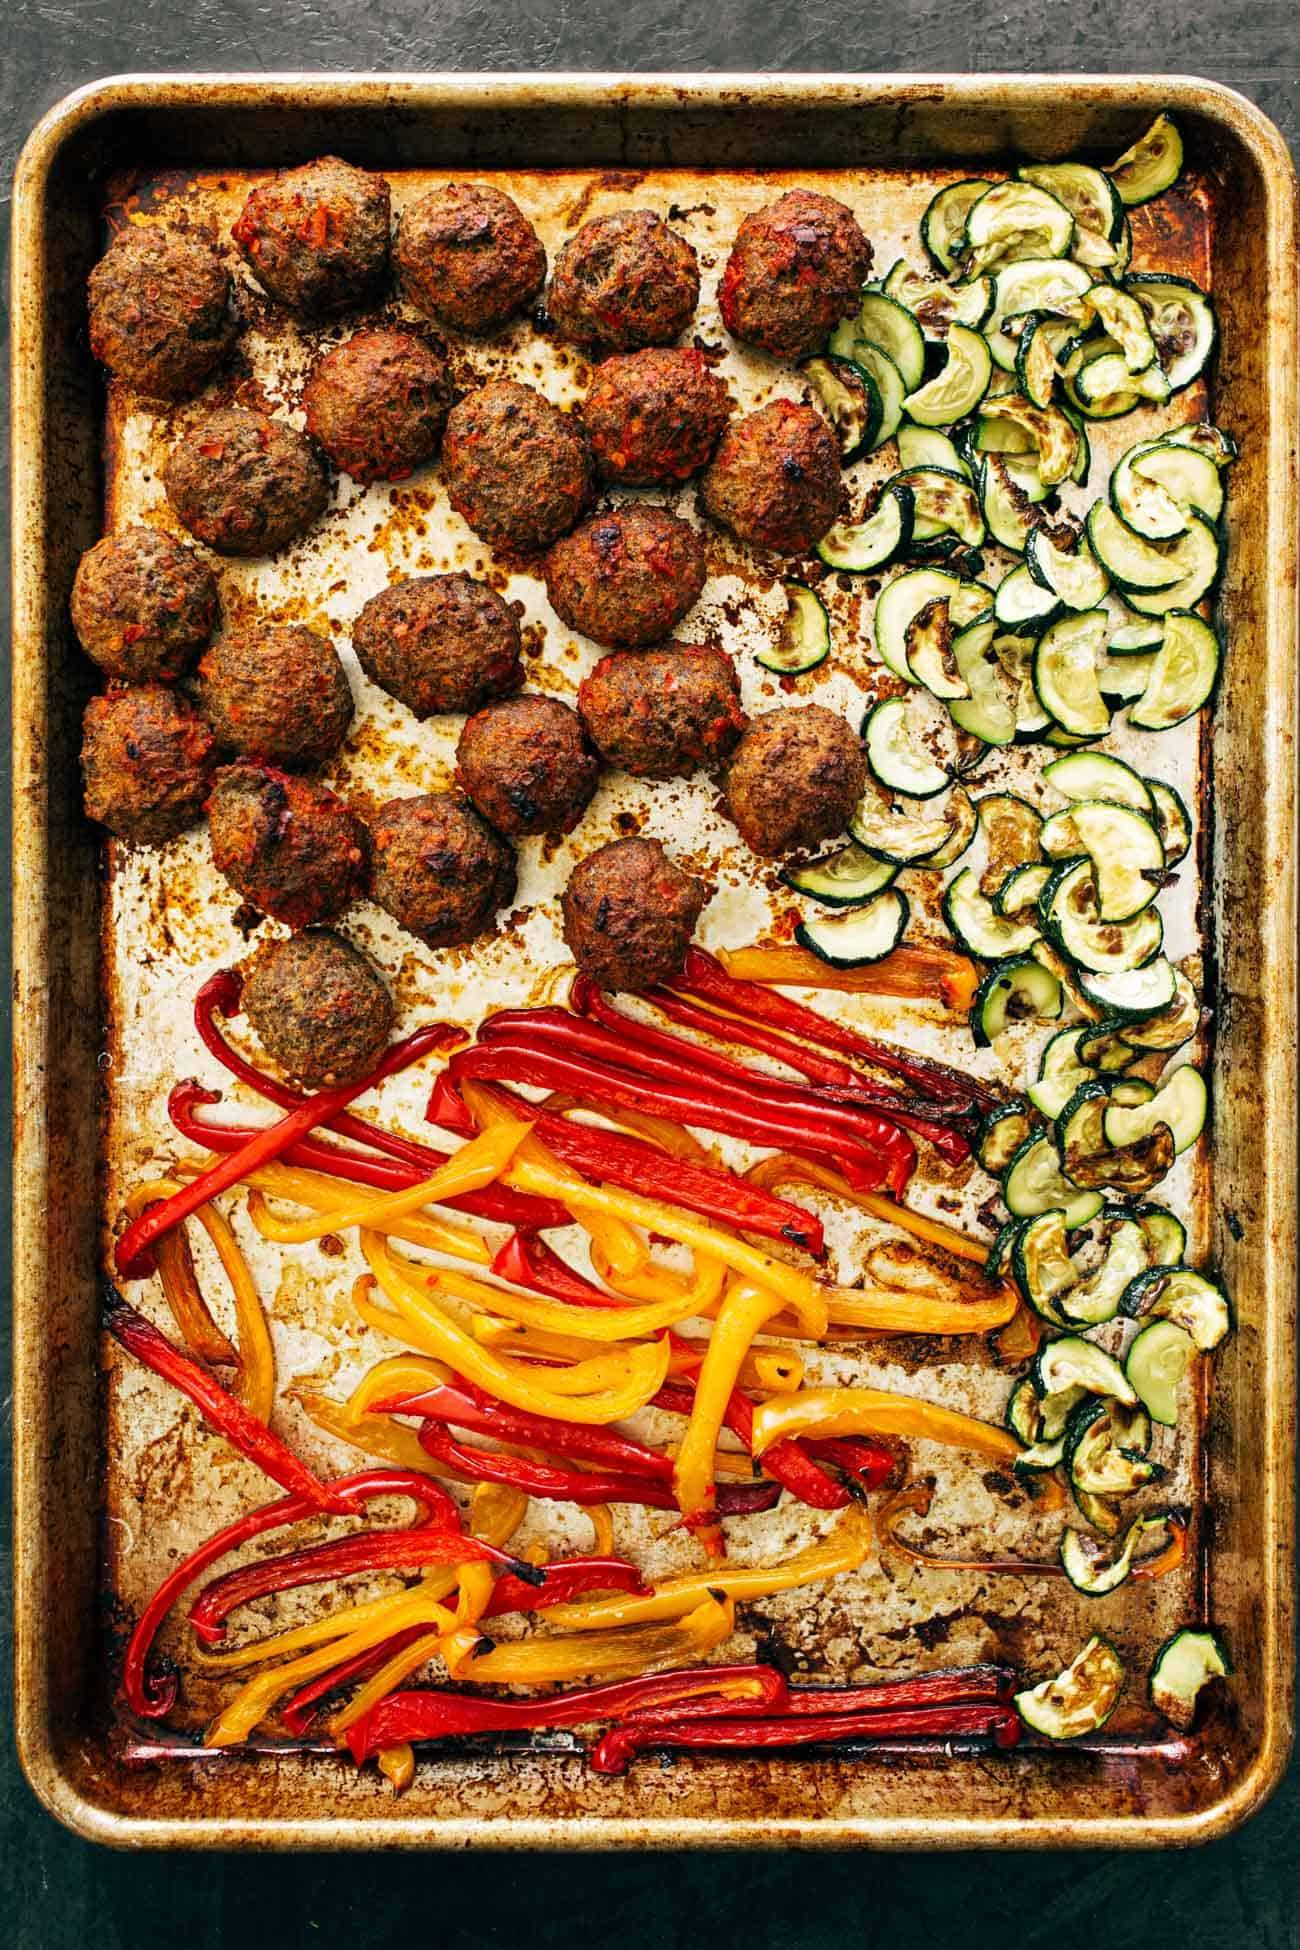 Cooked ingredients on a sheet pan for Harissa Meatballs with Whipped Feta